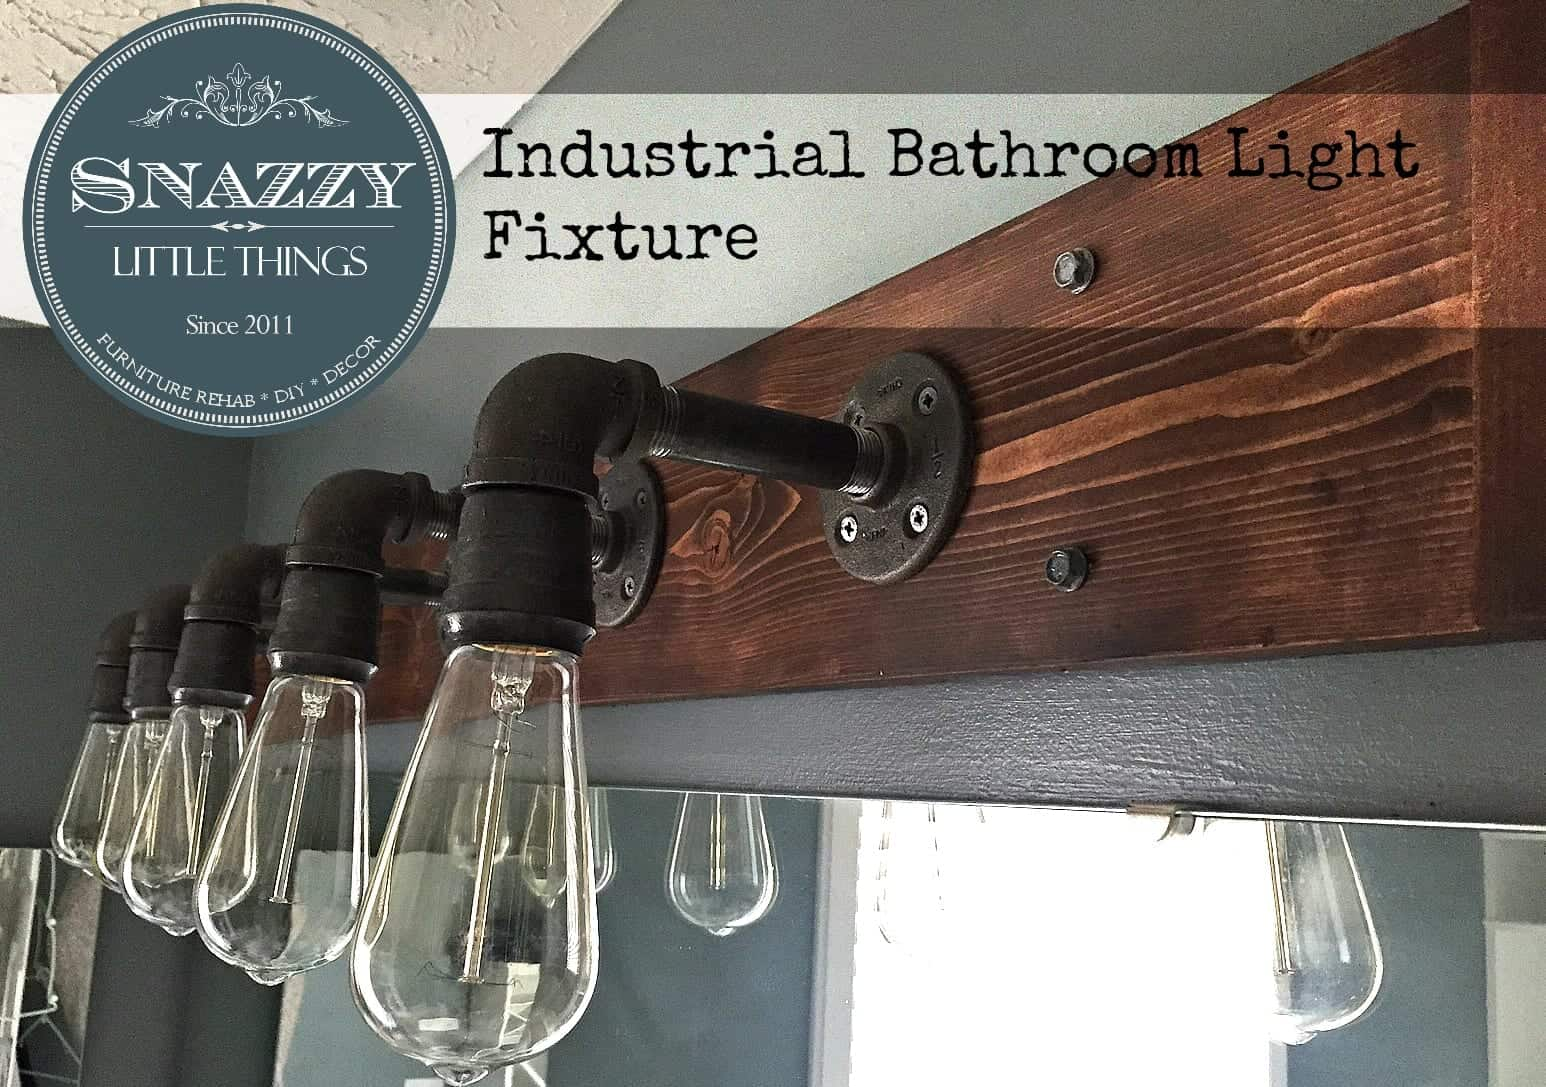 Industrial bathroom fixtures - Diy Industrial Bathroom Light Fixture By Snazzylittlethings Com